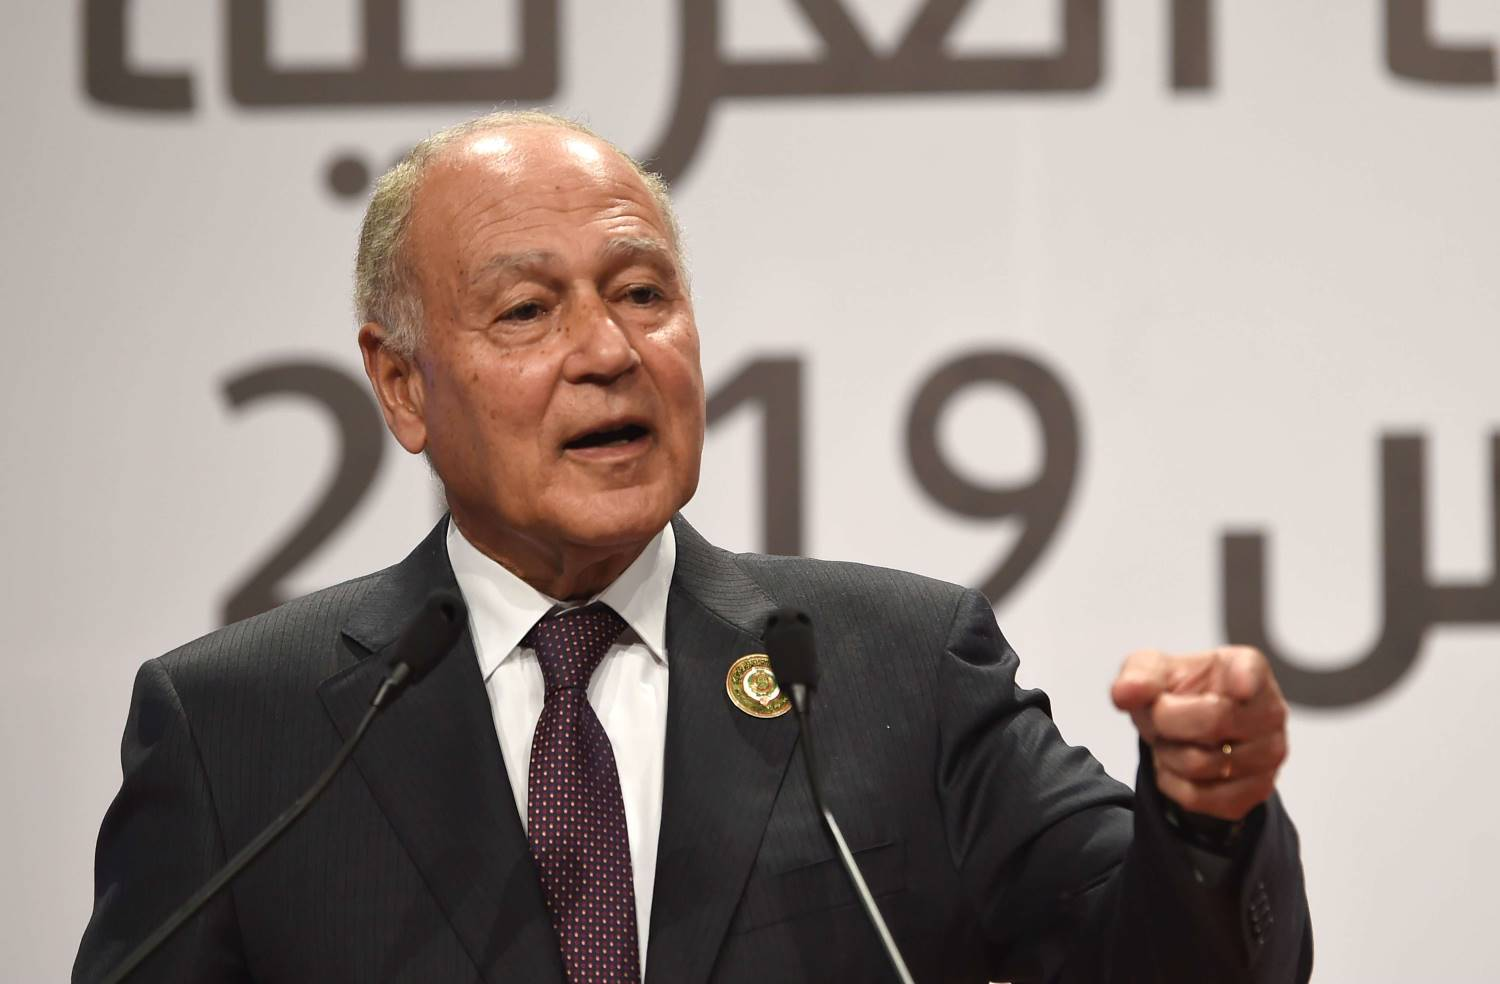 Arab League chief Ahmed Aboul Gheit speaks at a press conference after the closing the 30th Arab Summit, in the capital Tunis, on March 31, 2019. (AFP)